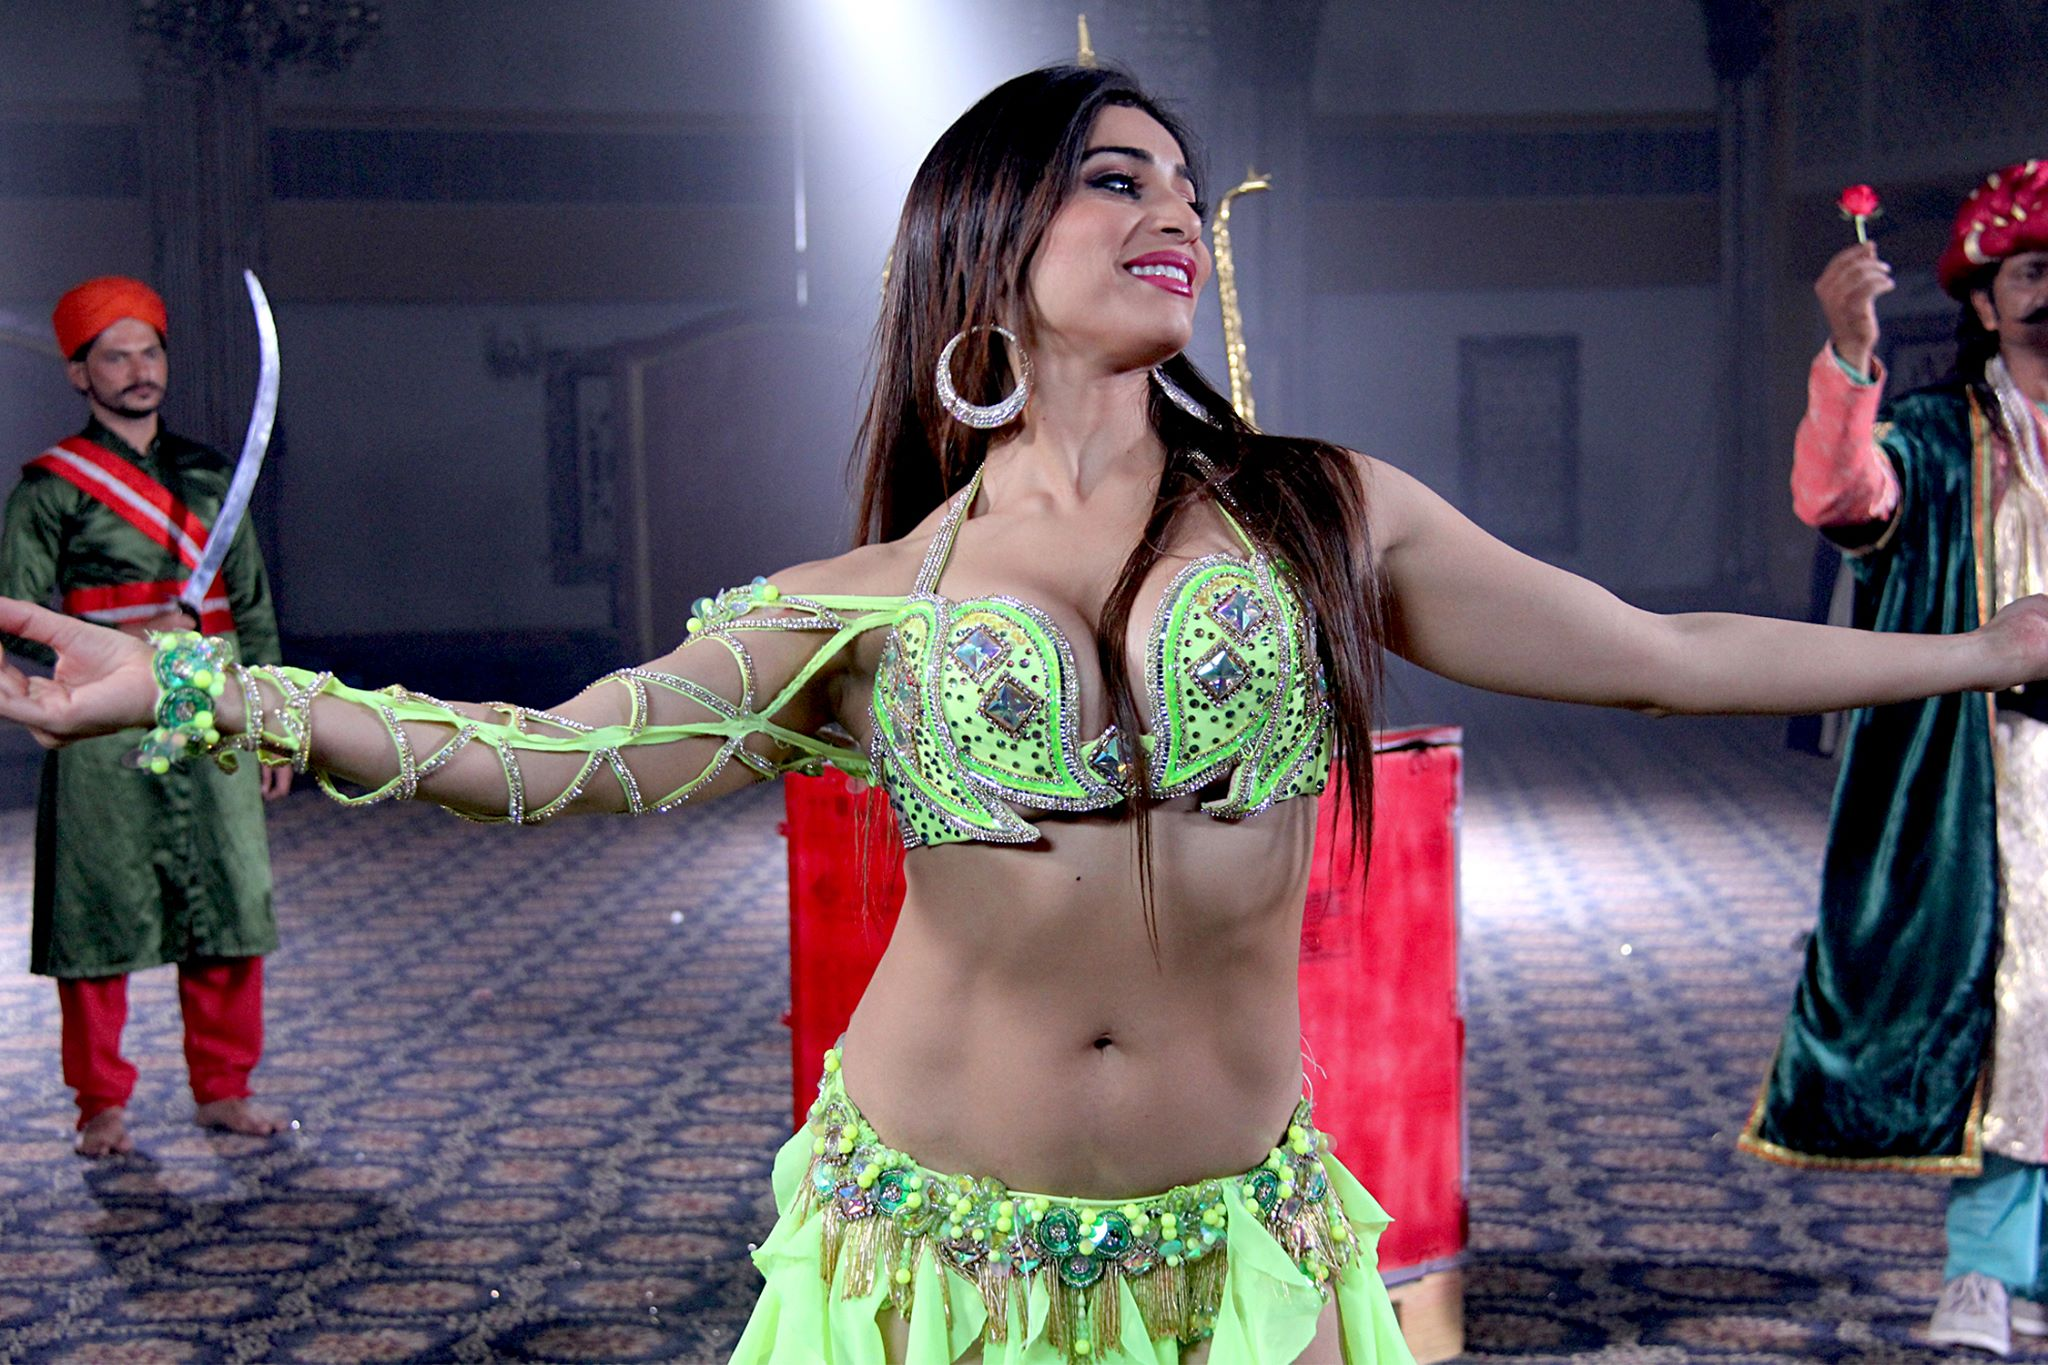 Najla belly dance photo pakistan yellow 2.jpg